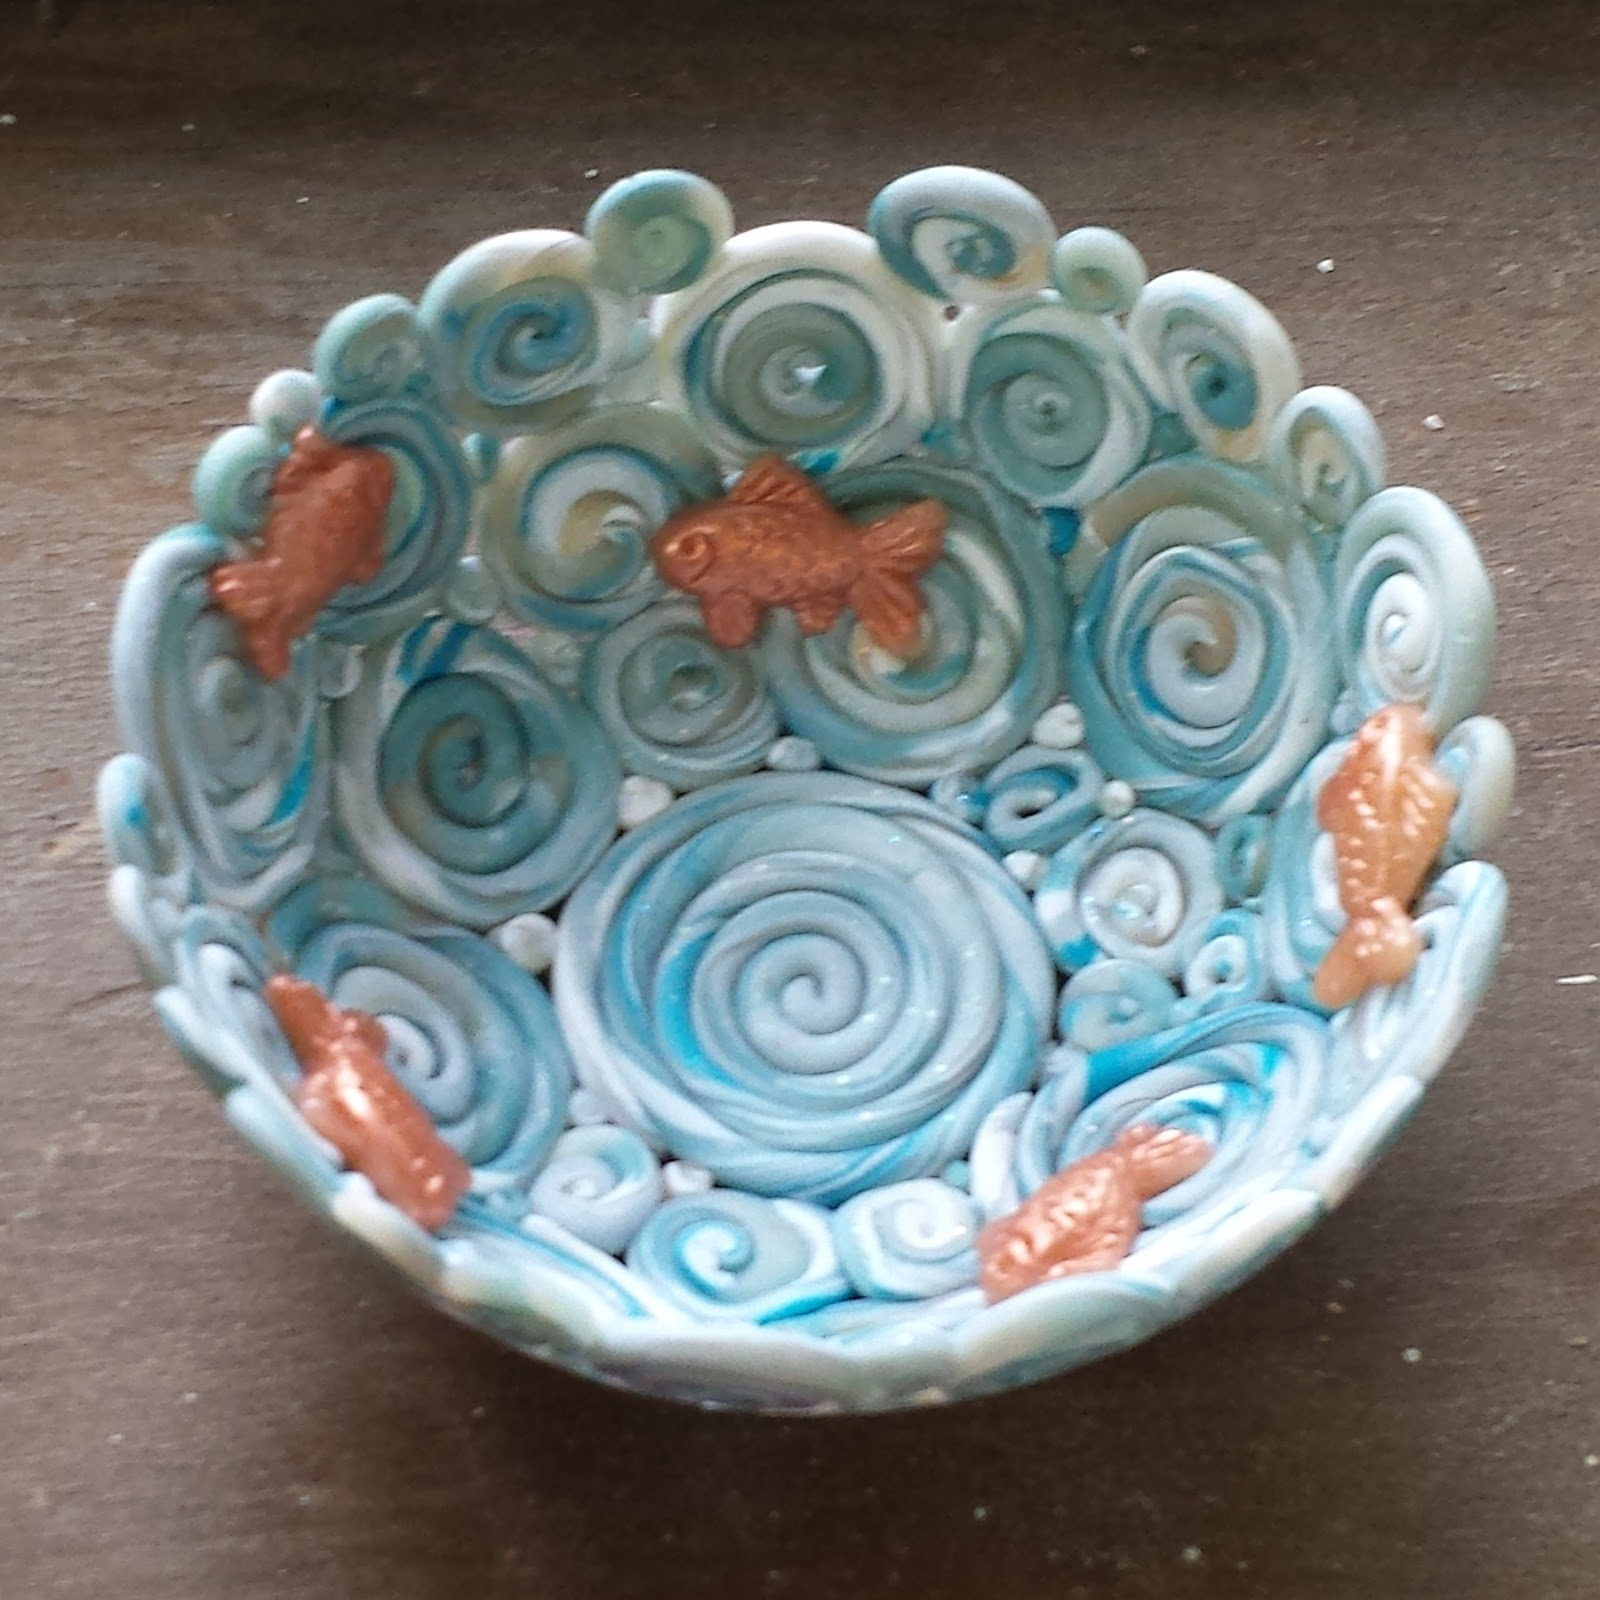 Adventures In Creativity: Tiny Polymer Clay Bowl With Gold